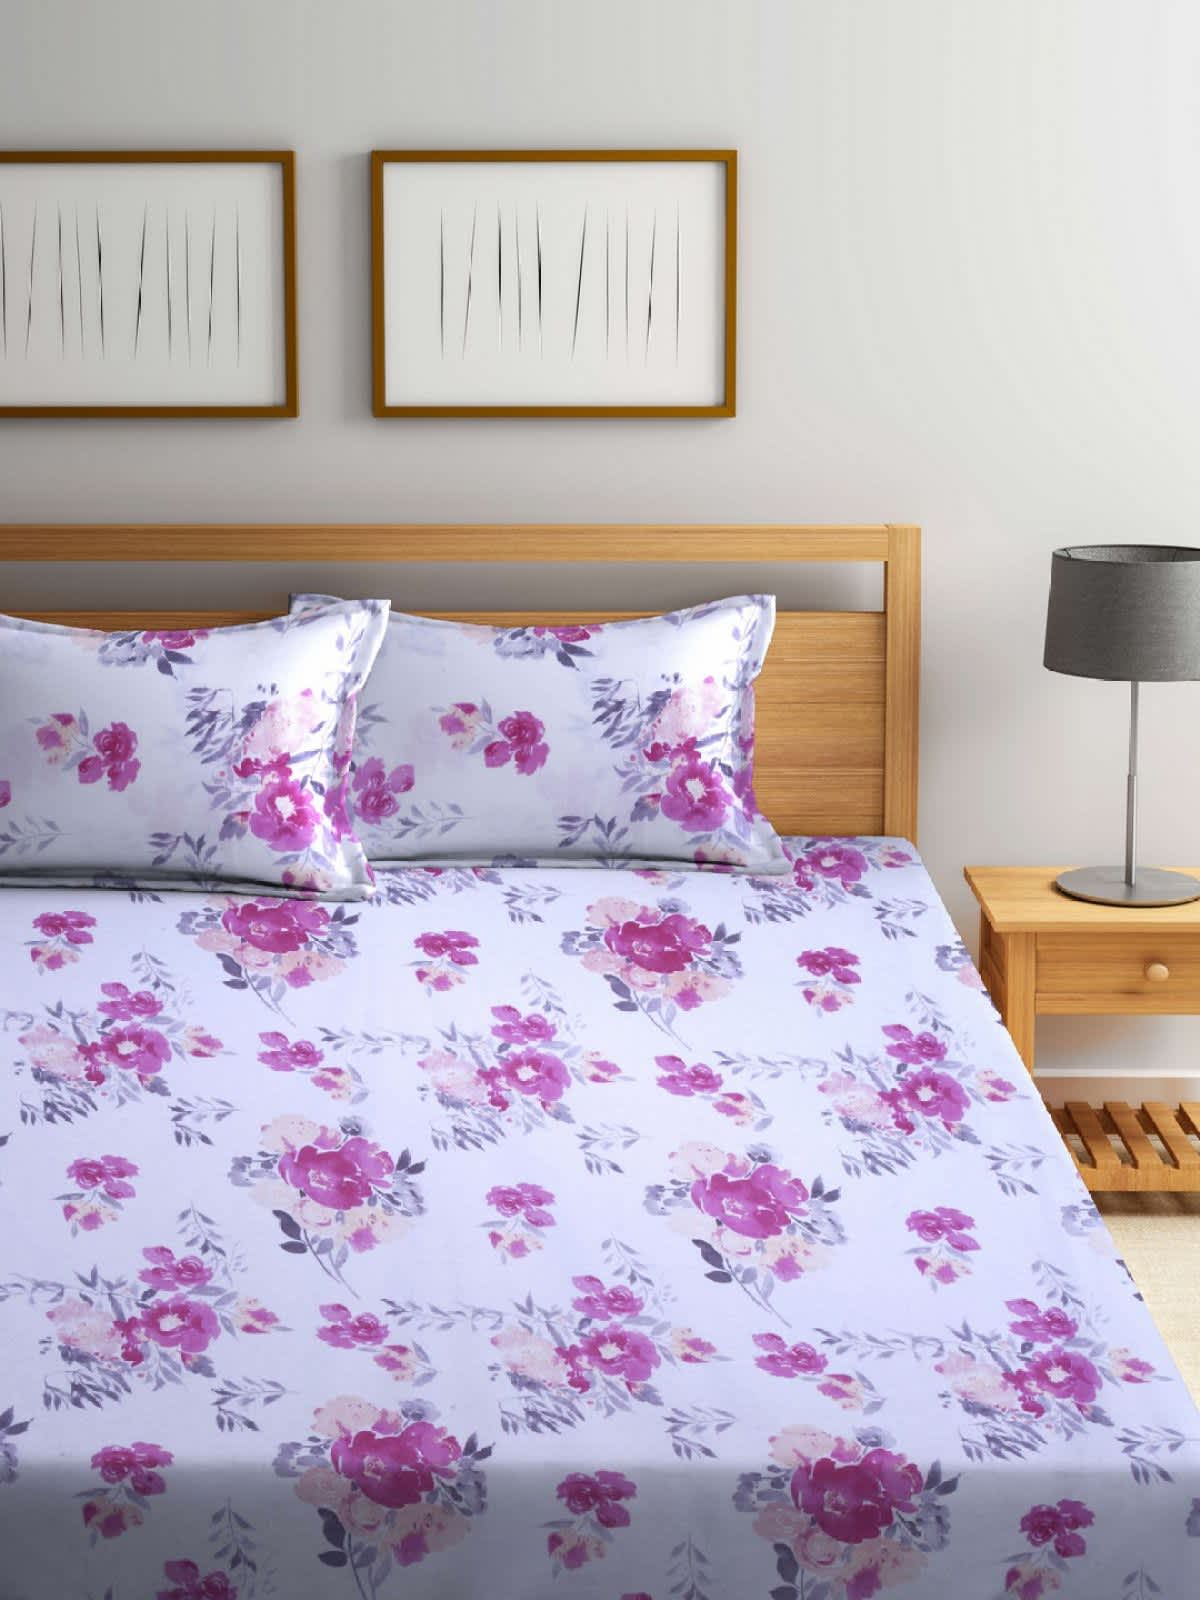 [Buy 3 @ 75% off)Raymond's cotton bedsheets @75% off